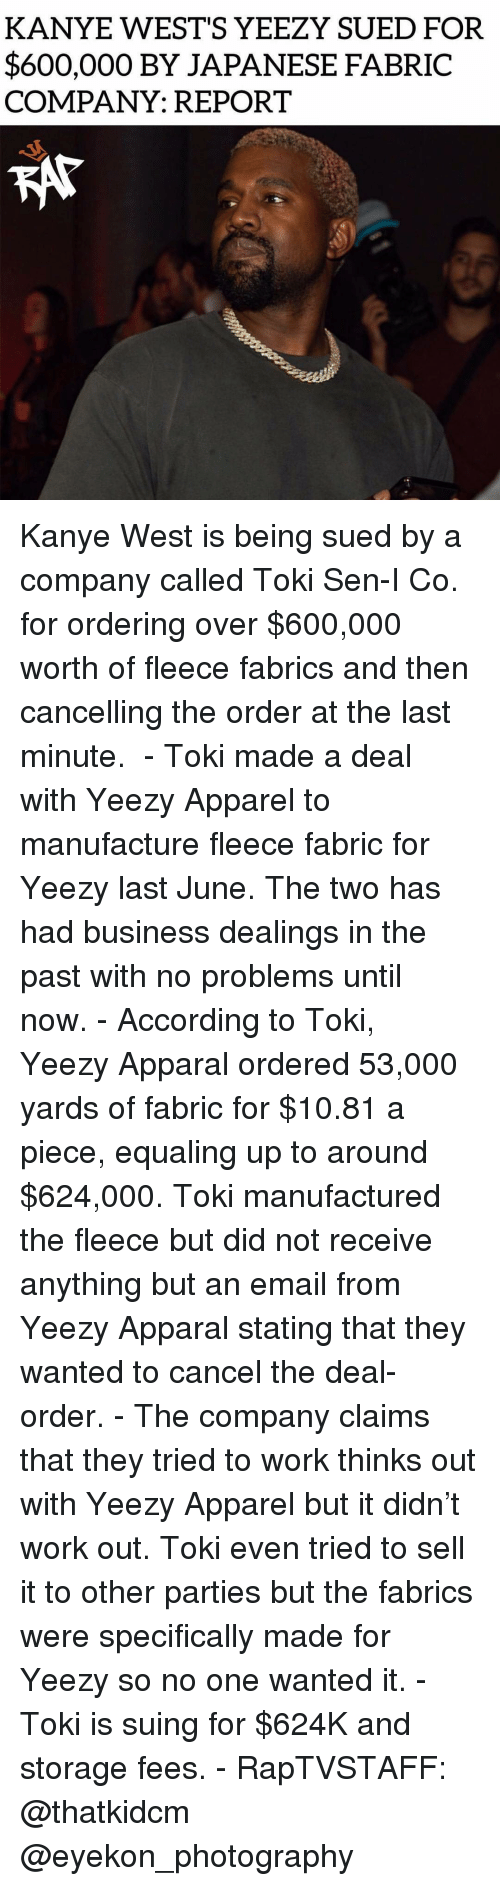 Stating: KANYE WEST'S YEEZY SUED FOR  $600,000 BY JAPANESE FABRIC  COMPANY: REPORT Kanye West is being sued by a company called Toki Sen-I Co. for ordering over $600,000 worth of fleece fabrics and then cancelling the order at the last minute.  - Toki made a deal with Yeezy Apparel to manufacture fleece fabric for Yeezy last June. The two has had business dealings in the past with no problems until now. - According to Toki, Yeezy Apparal ordered 53,000 yards of fabric for $10.81 a piece, equaling up to around $624,000. Toki manufactured the fleece but did not receive anything but an email from Yeezy Apparal stating that they wanted to cancel the deal-order. - The company claims that they tried to work thinks out with Yeezy Apparel but it didn't work out. Toki even tried to sell it to other parties but the fabrics were specifically made for Yeezy so no one wanted it. - Toki is suing for $624K and storage fees. - RapTVSTAFF: @thatkidcm @eyekon_photography